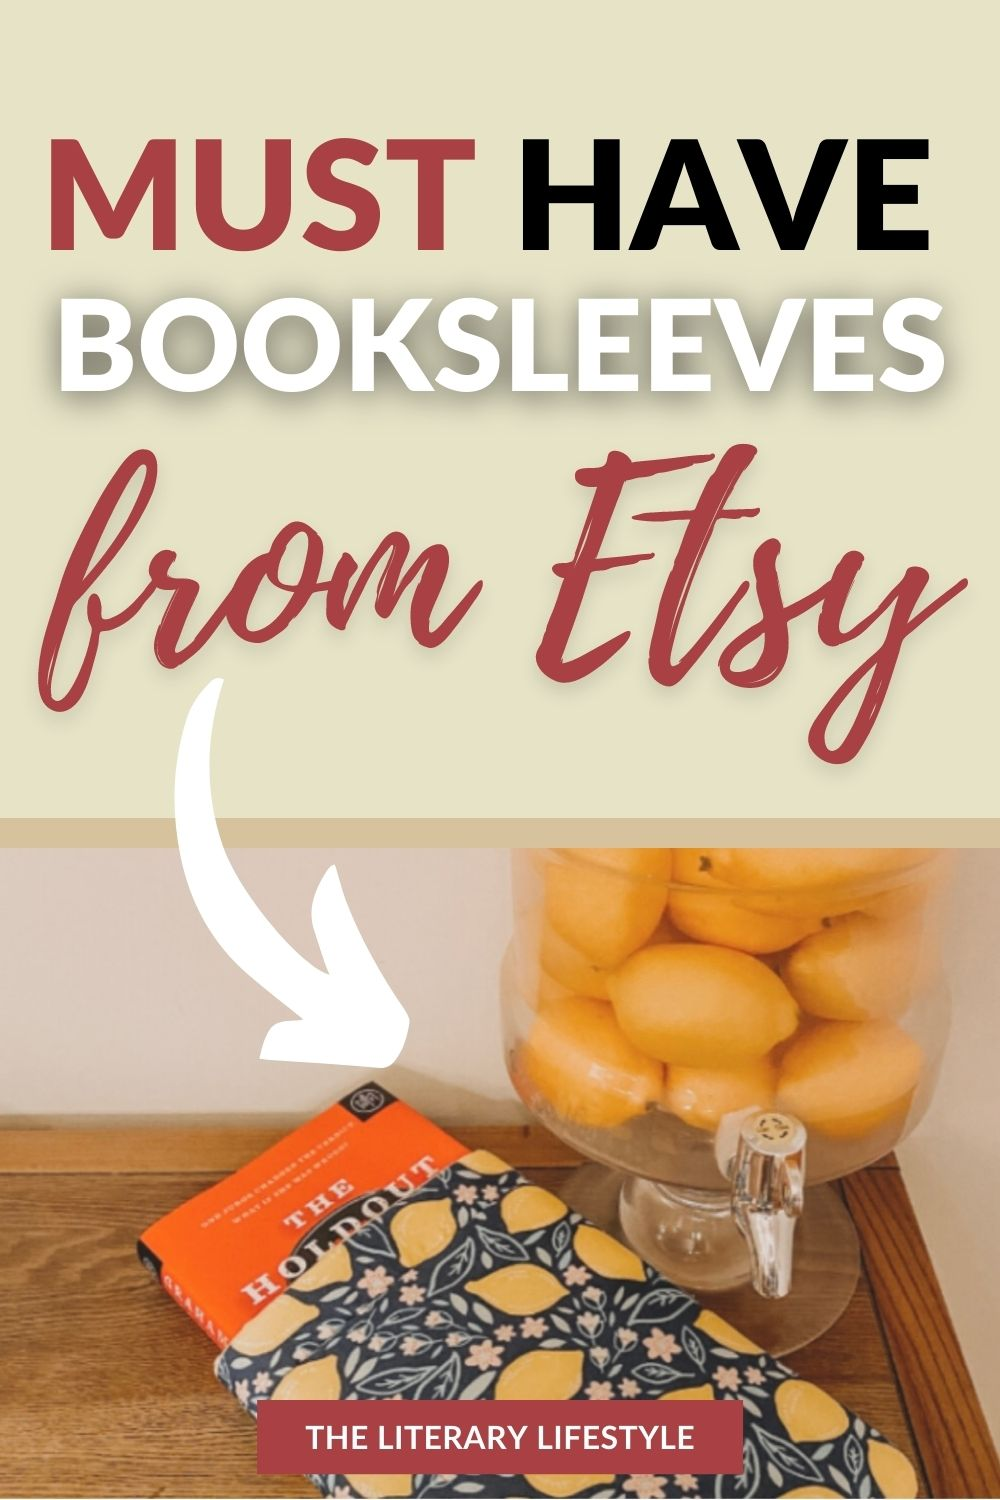 booksleeves from etsy